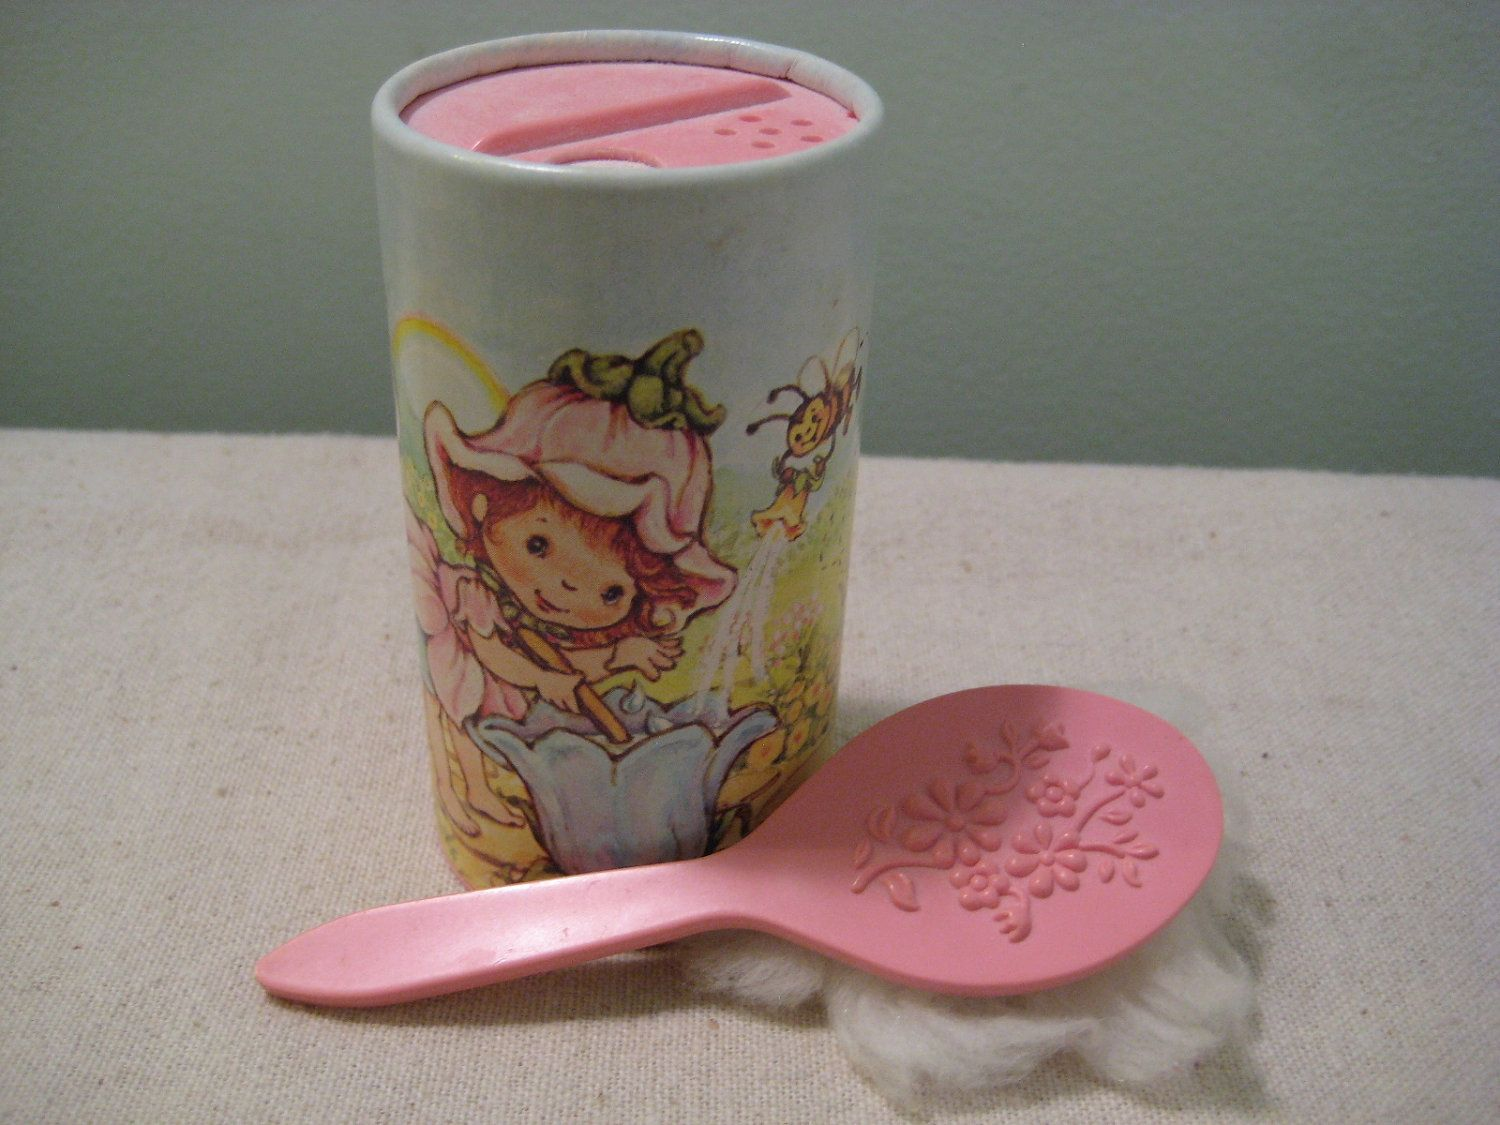 Vintage Avon Little Blossom Whistper Soft Fragranced Talc Toys Tupperware Sweet Set Powder